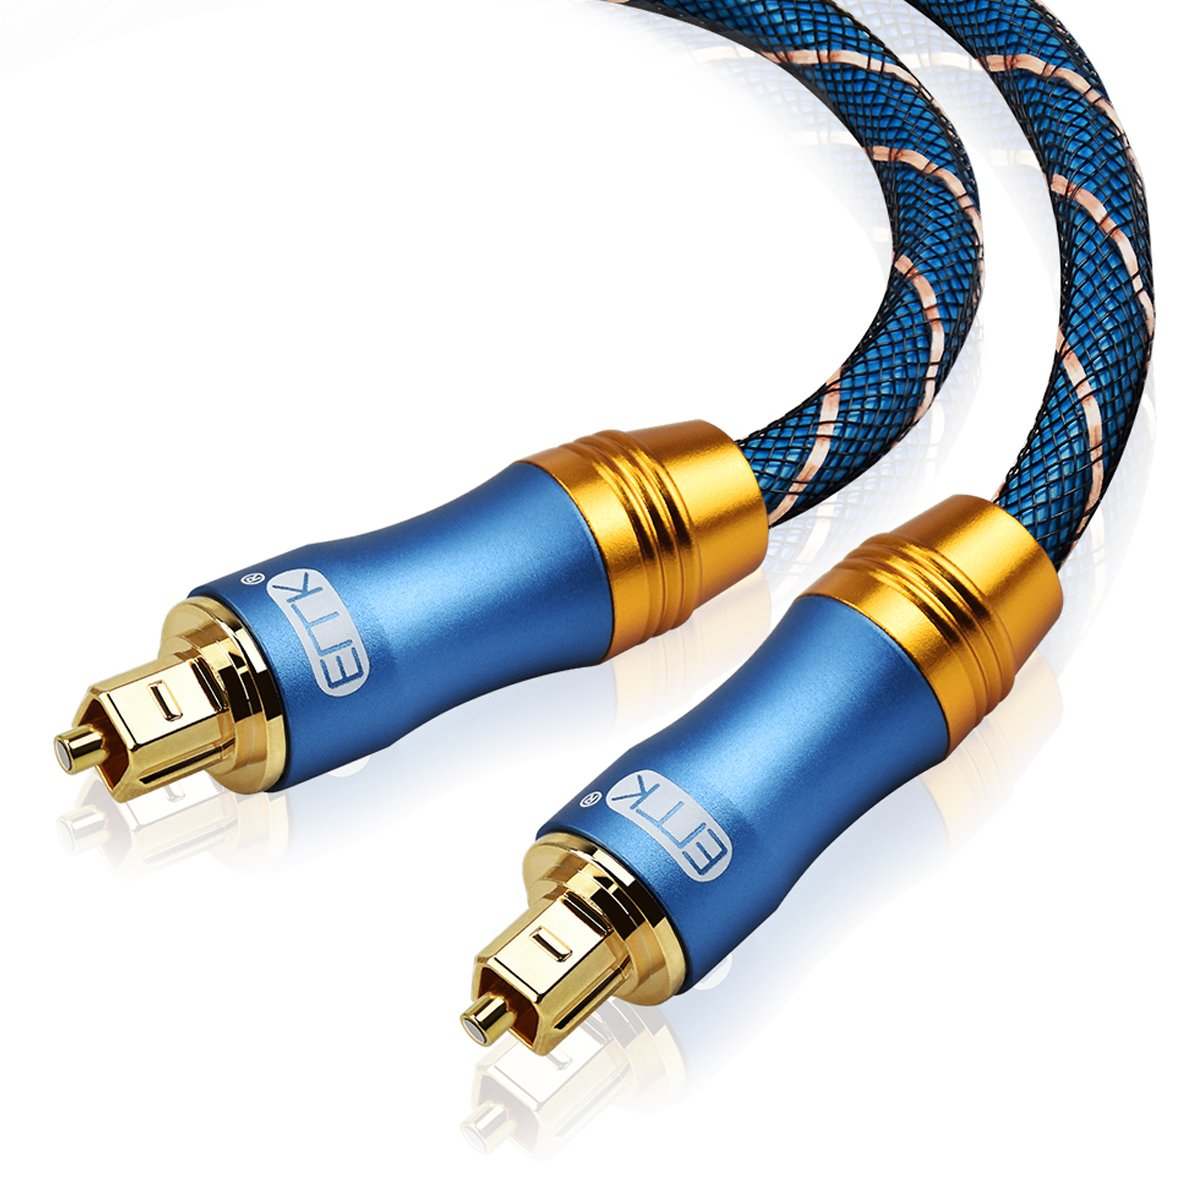 Optical Audio Cable Digital Toslink Cable - [Nylon Braided Jacket,Durable and Flexible]EMK Fiber Optic Cord for Home Theater, Sound bar, TV, PS4, Xbox & More - 6Ft/1.8M,blue - 15Ft/4.6M,blue